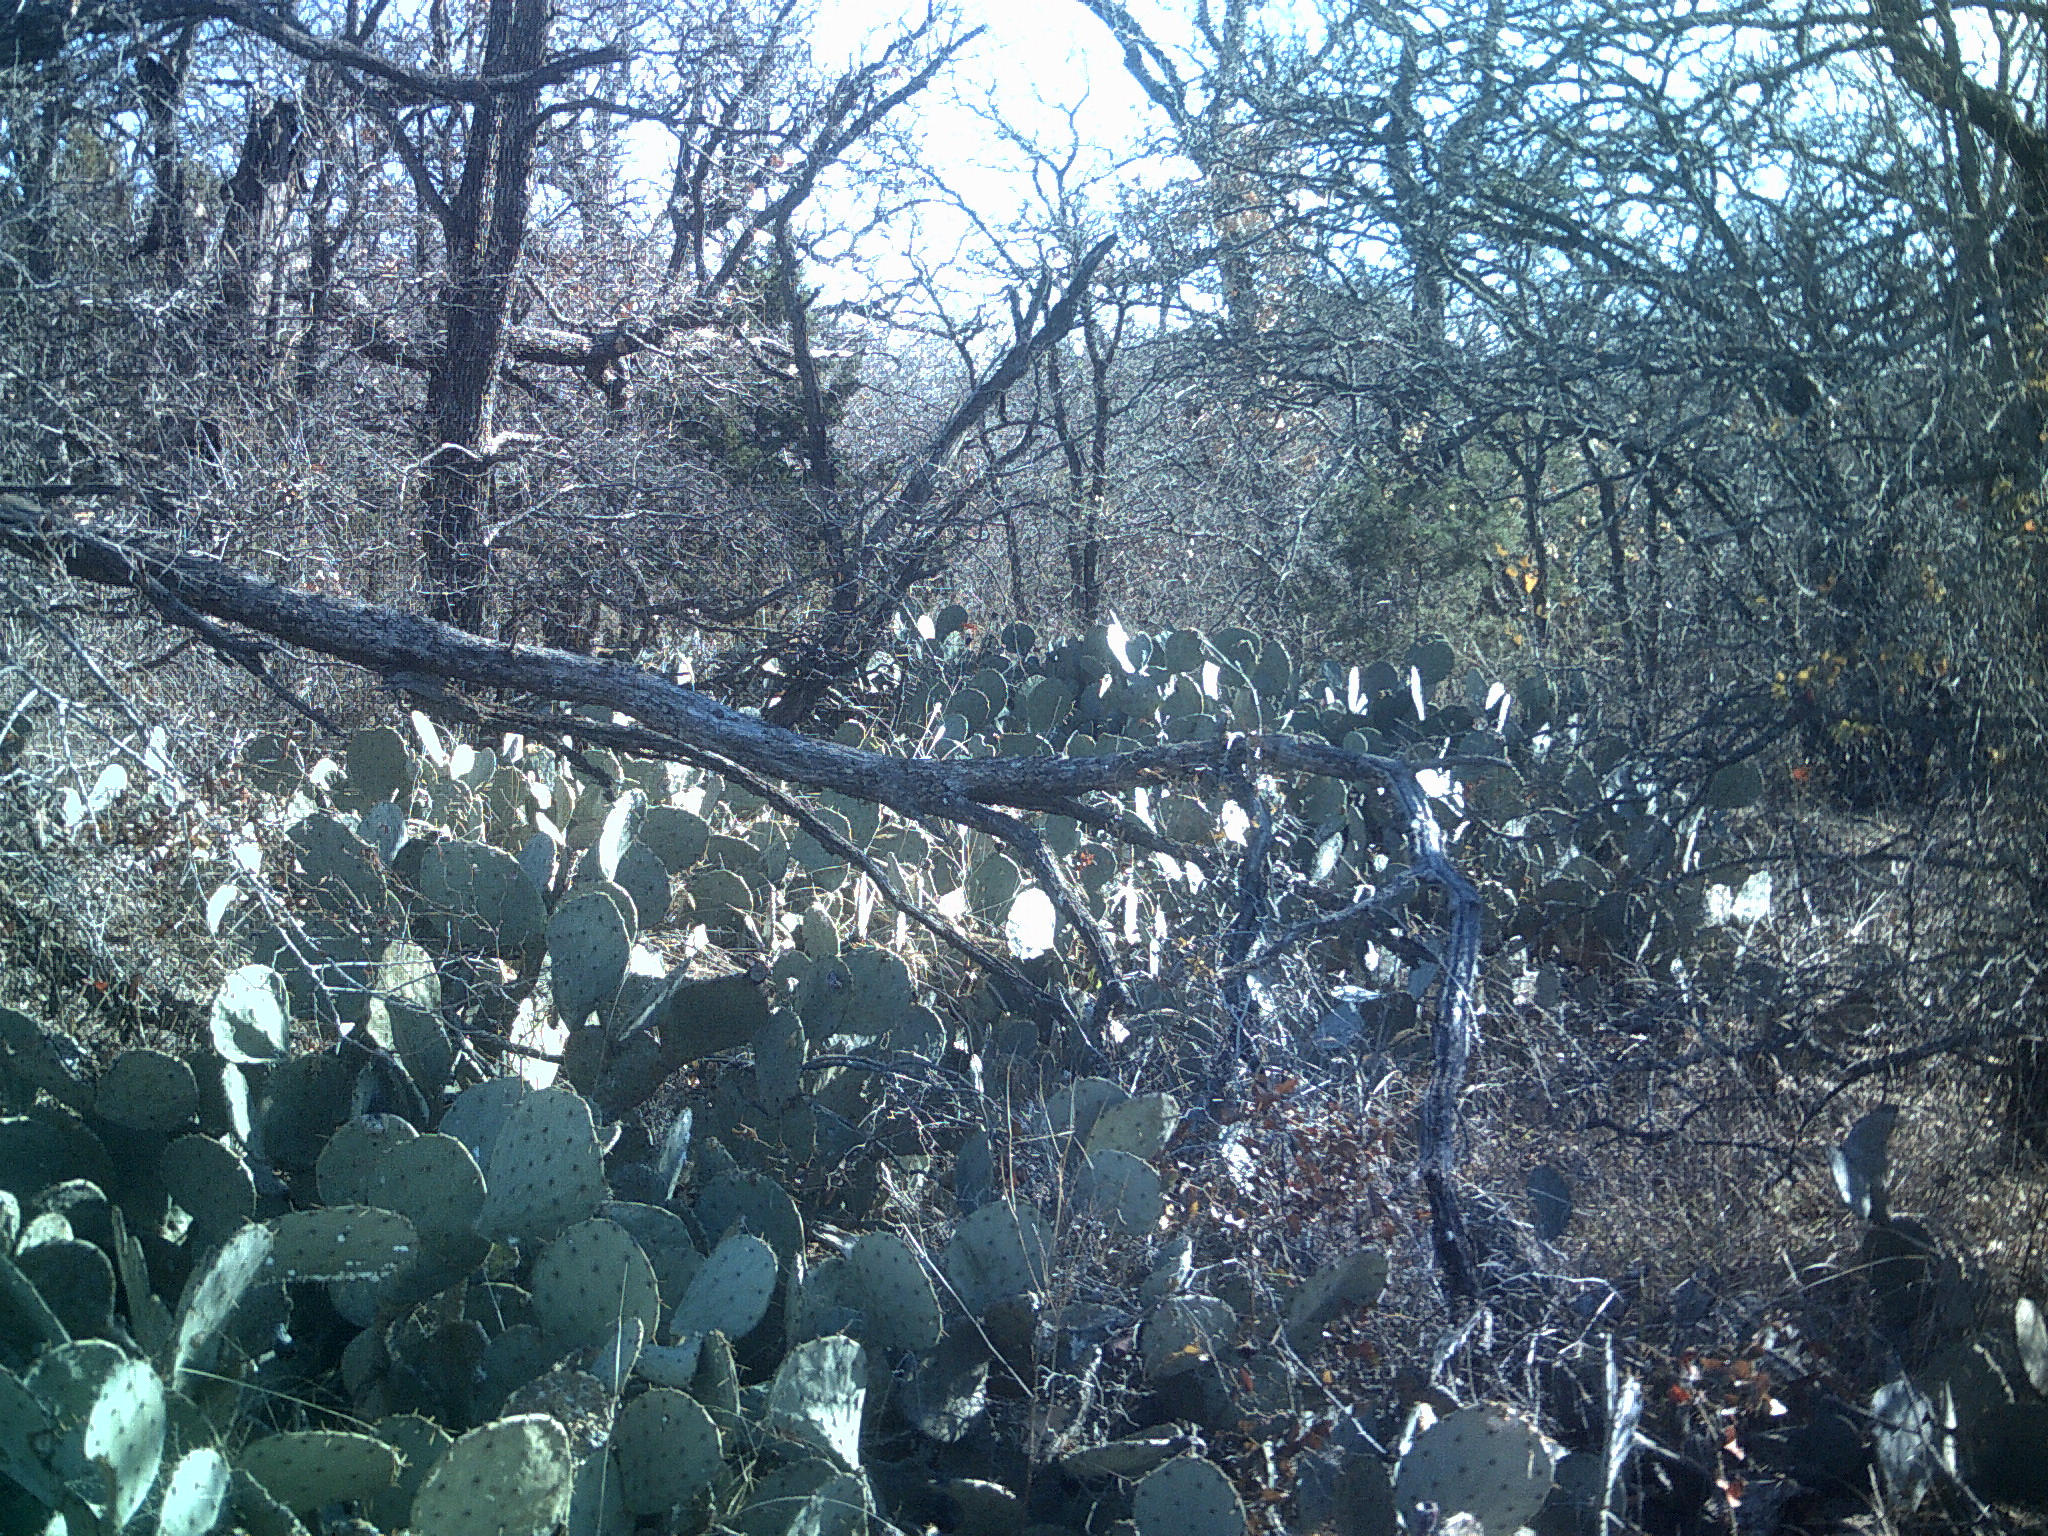 Cacti at Mineral Wells State Park